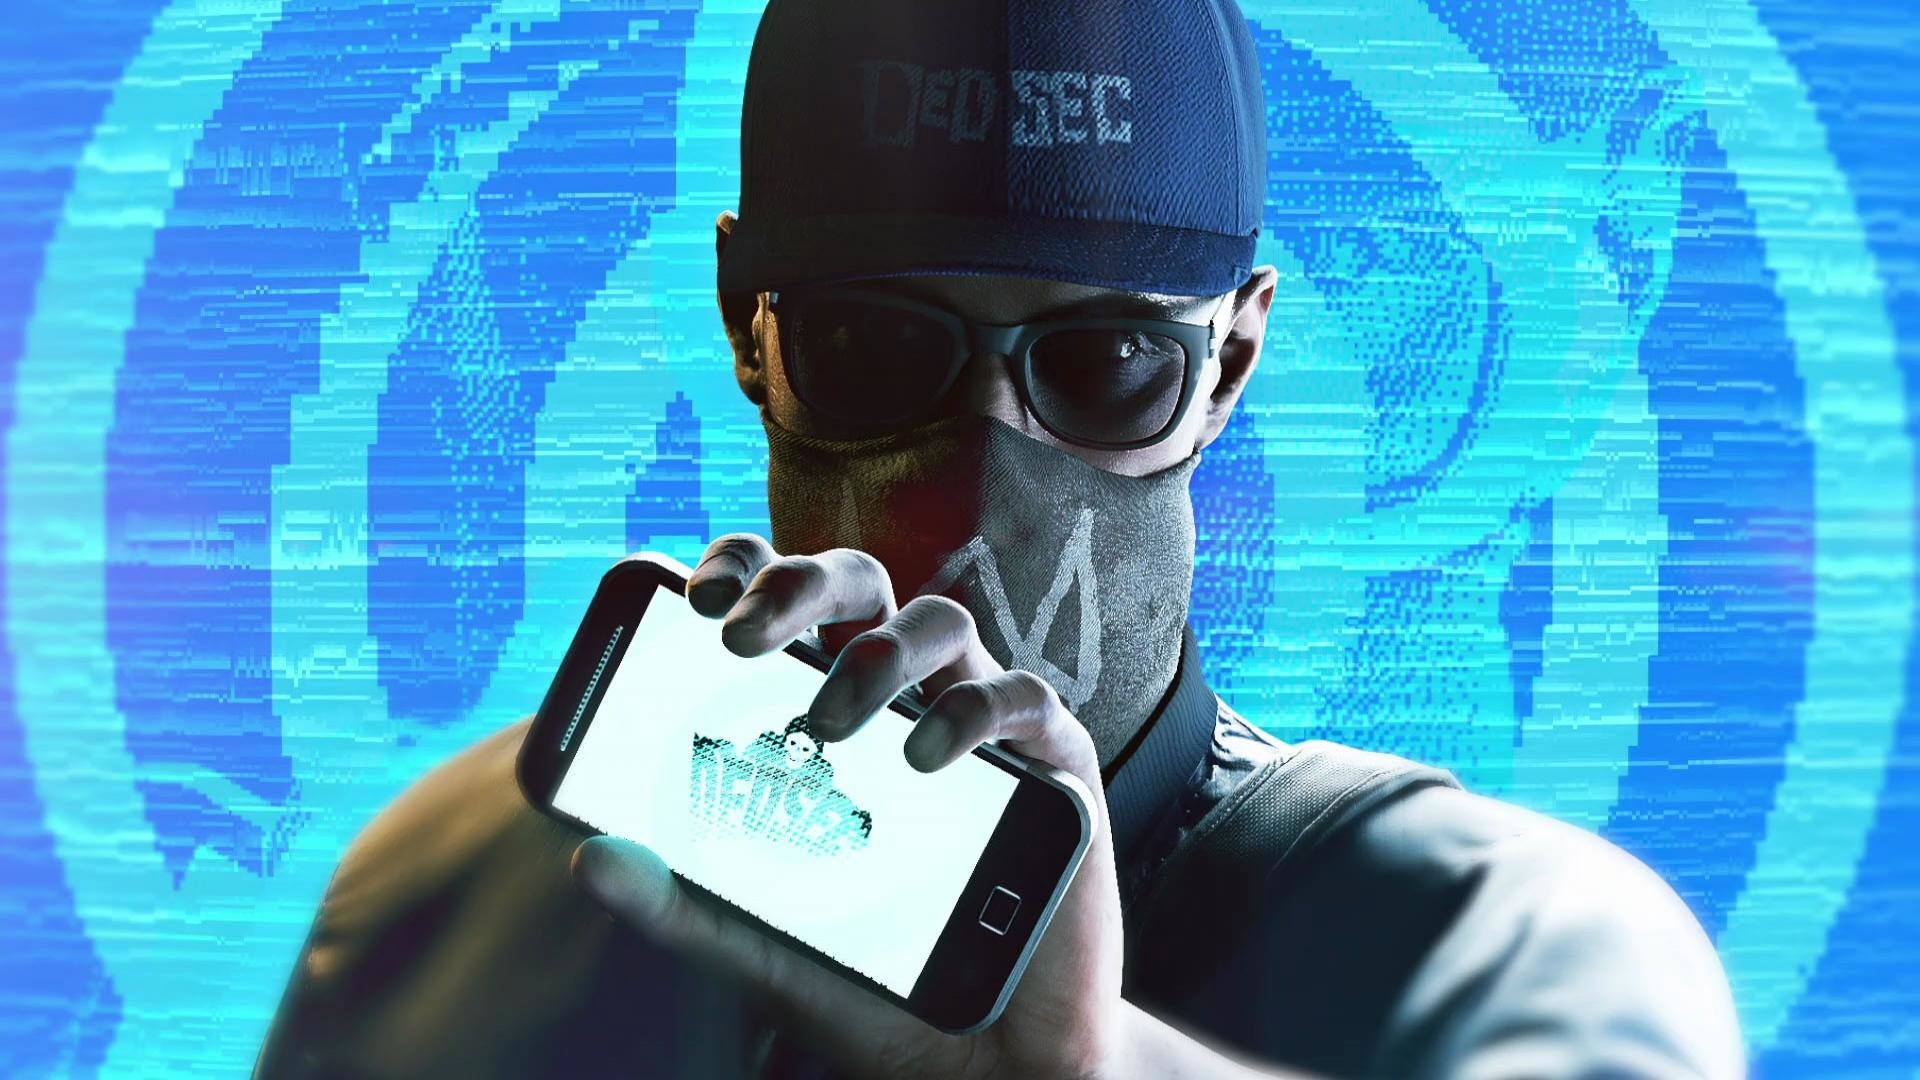 Watch Dogs High Resolution Games Hd Wallpaper For Mobile: Watch Dogs Wallpapers 1920x1080 Full HD (1080p) Desktop